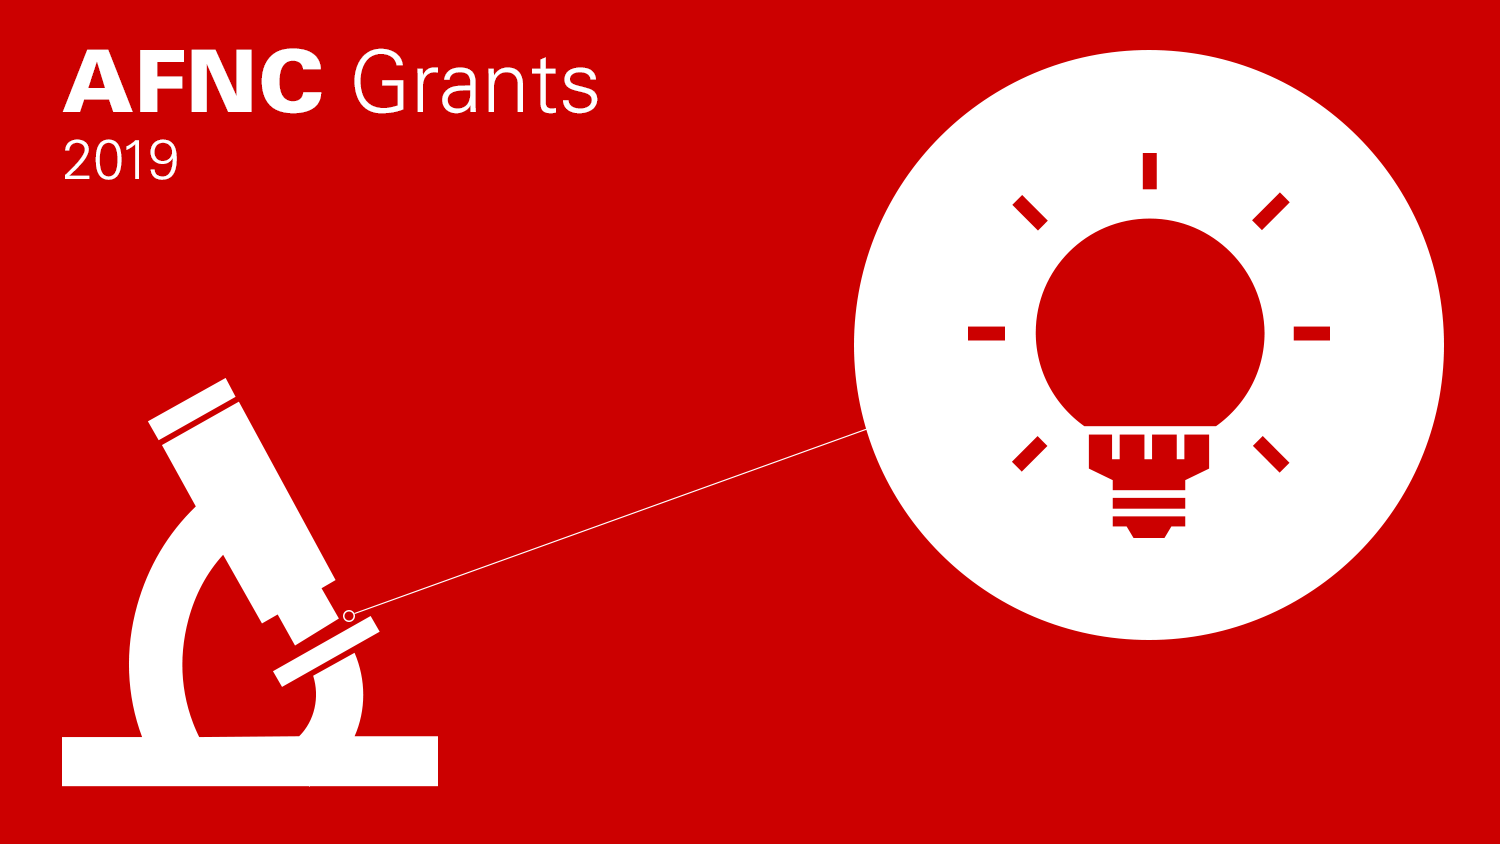 AFNC grants graphic with a microscope and lightbulb